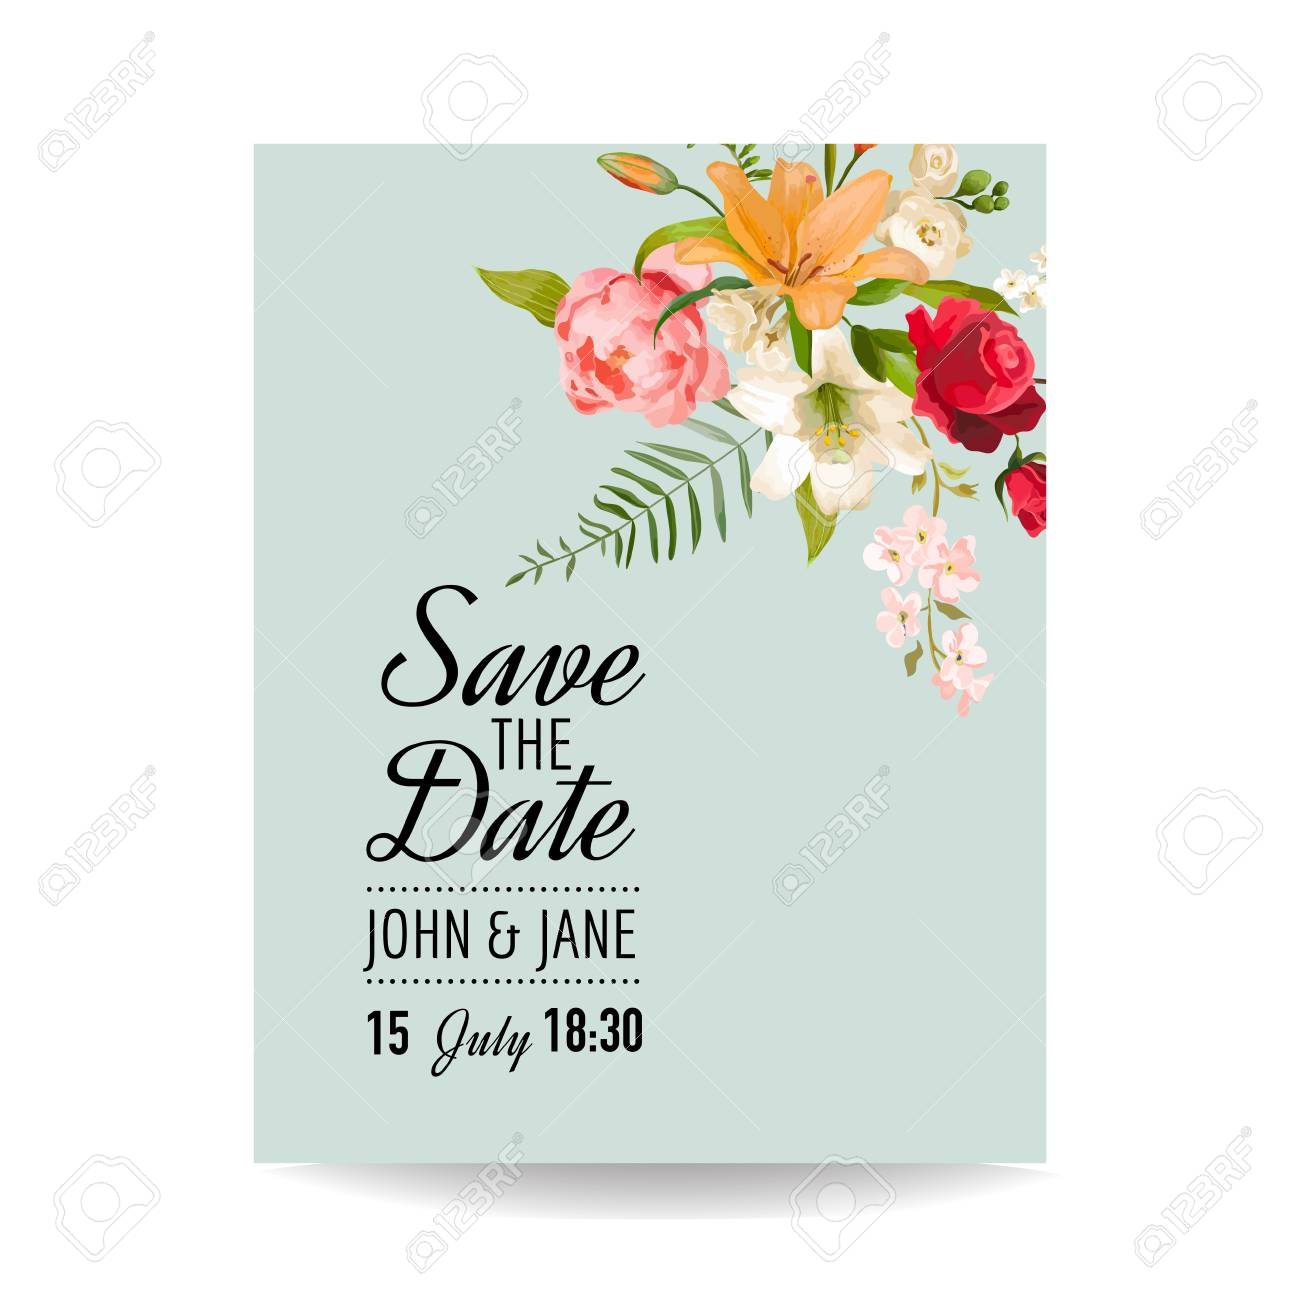 Save The Date Wedding Card With Watercolor Lily Flowers For